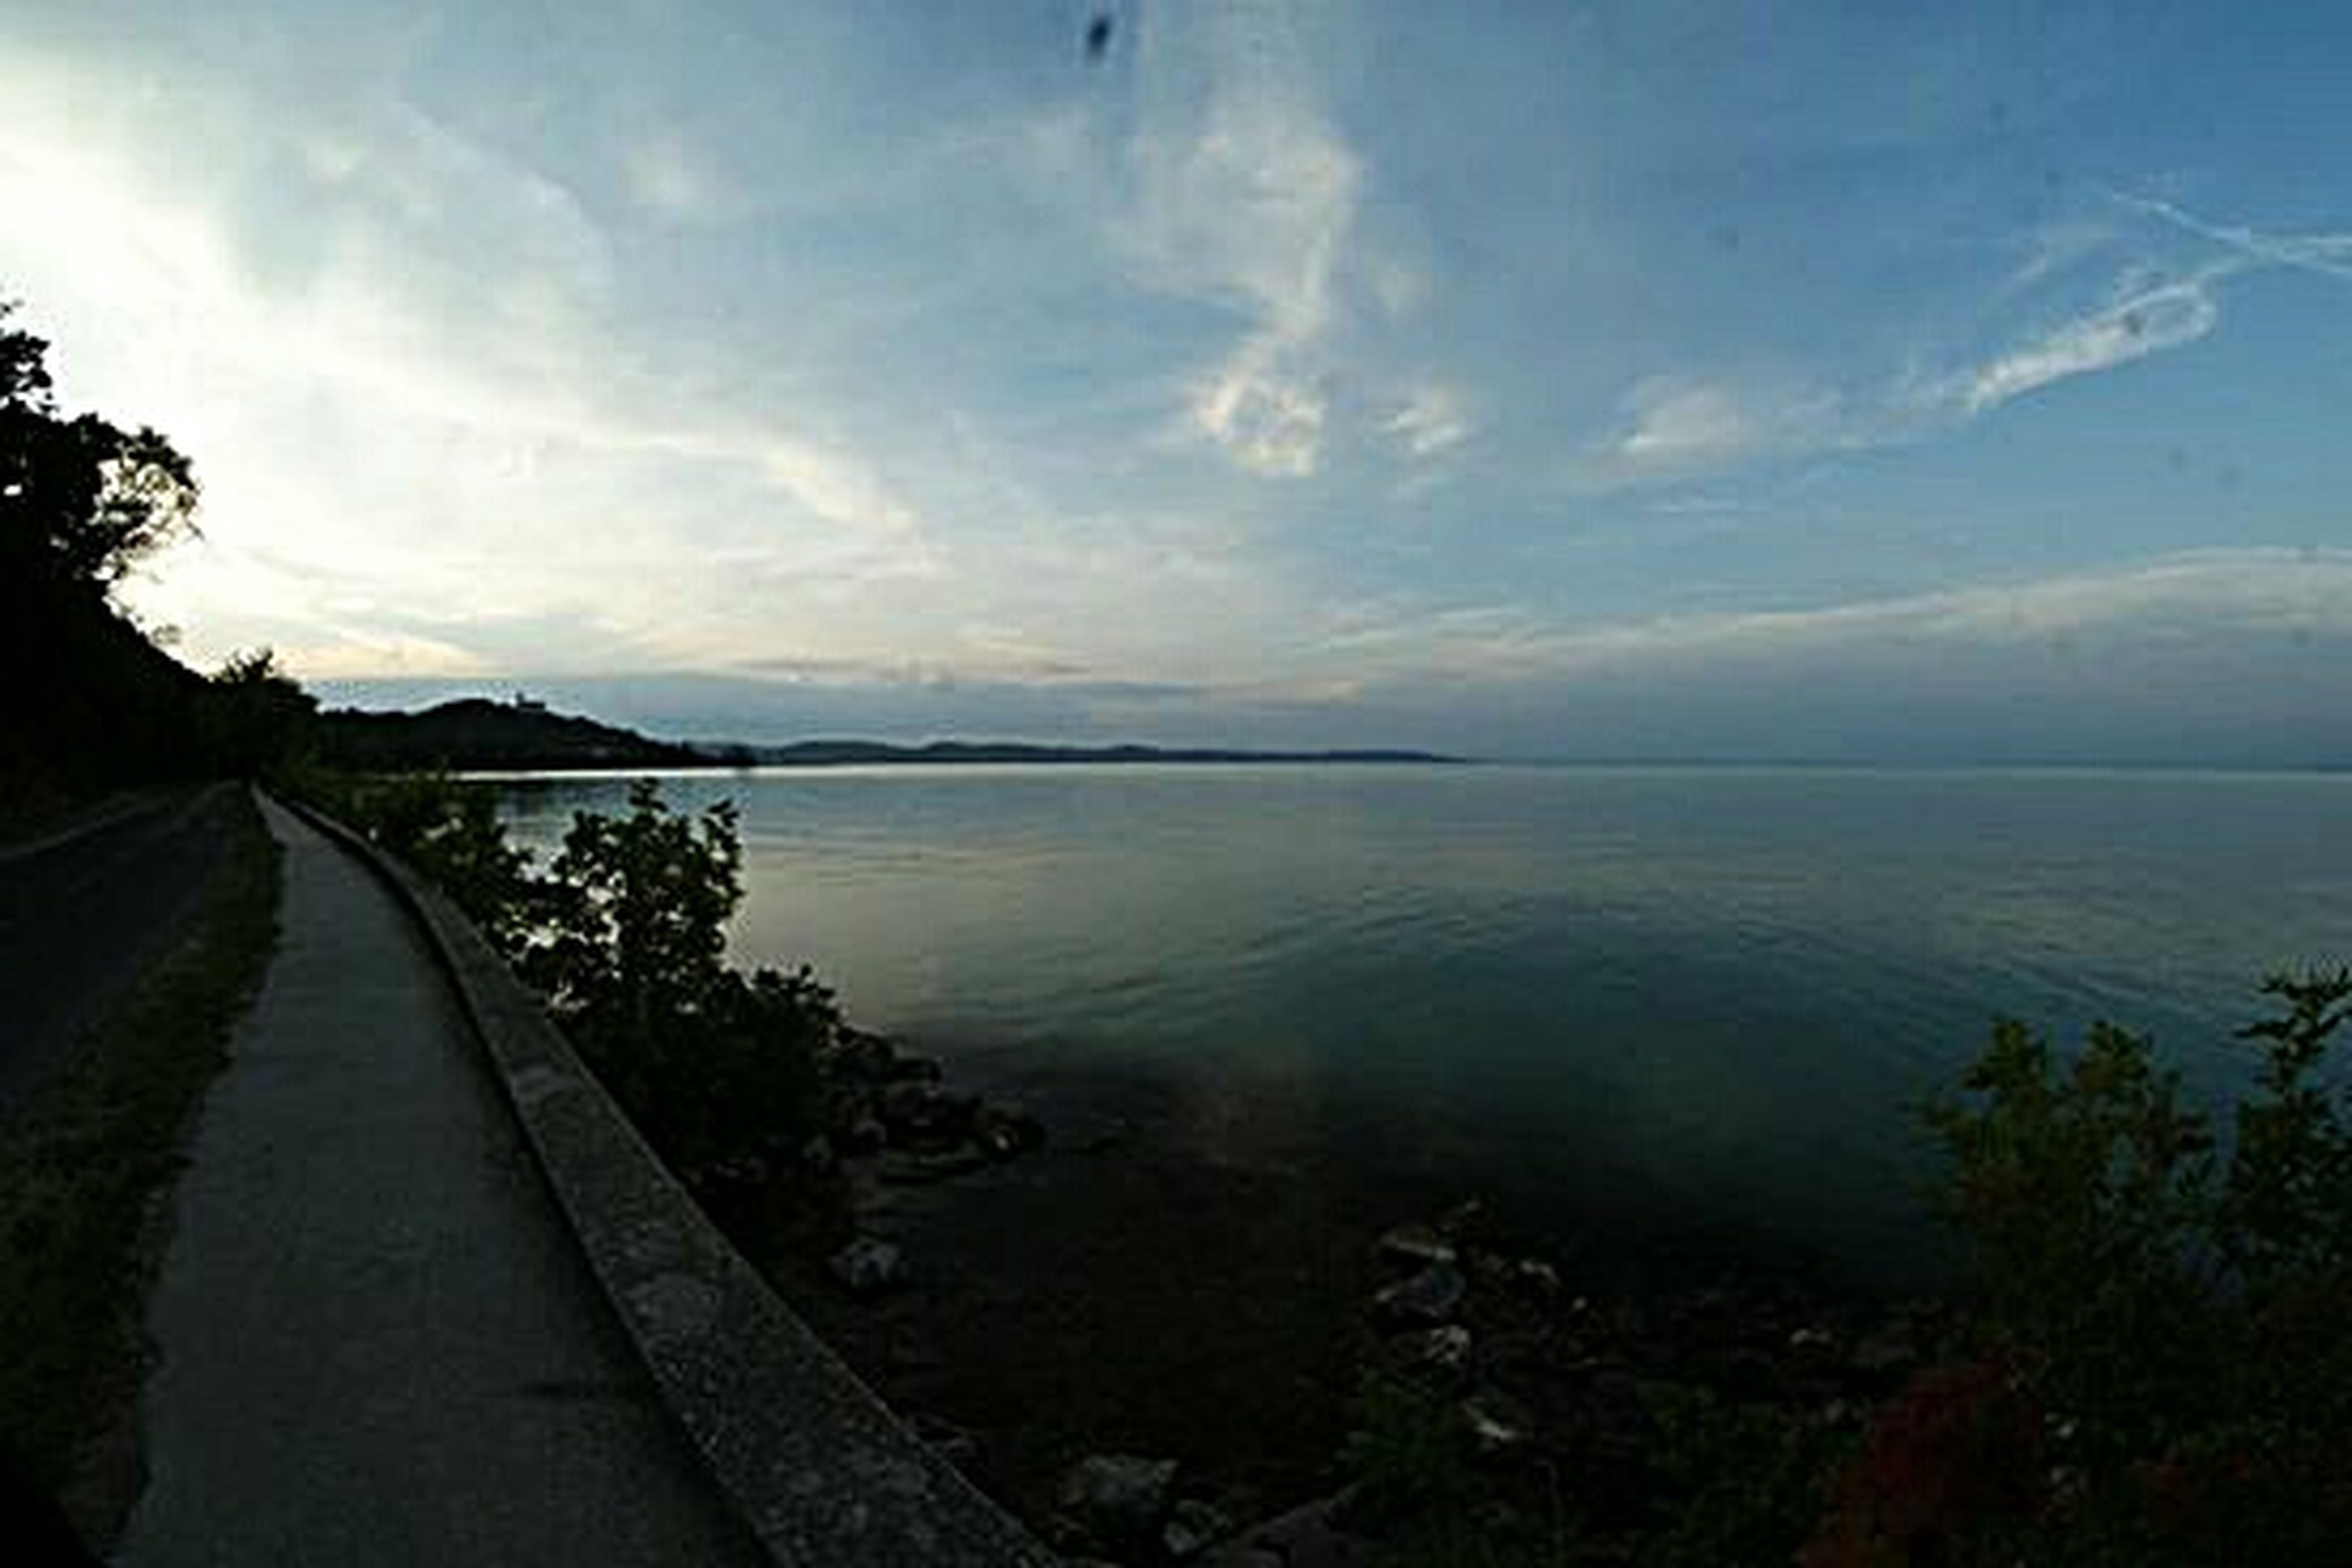 water, sky, tranquil scene, tranquility, scenics, beauty in nature, the way forward, cloud - sky, nature, sea, cloud, lake, tree, idyllic, horizon over water, panoramic, cloudy, plant, outdoors, non-urban scene